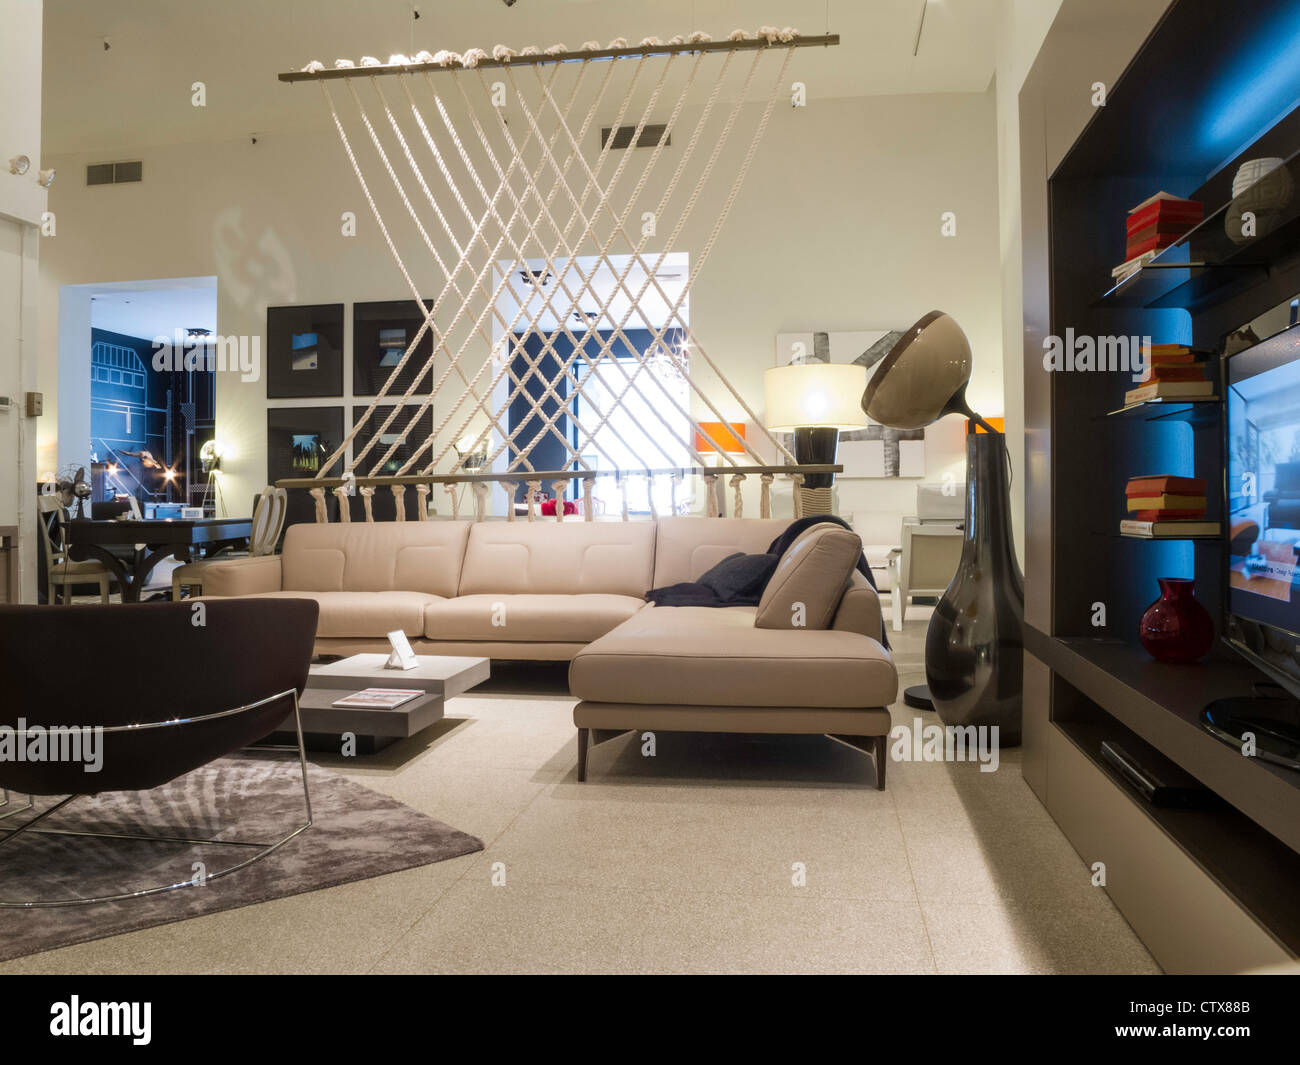 roche bobois furniture store interior nyc stock photo royalty free image 49749739 alamy. Black Bedroom Furniture Sets. Home Design Ideas